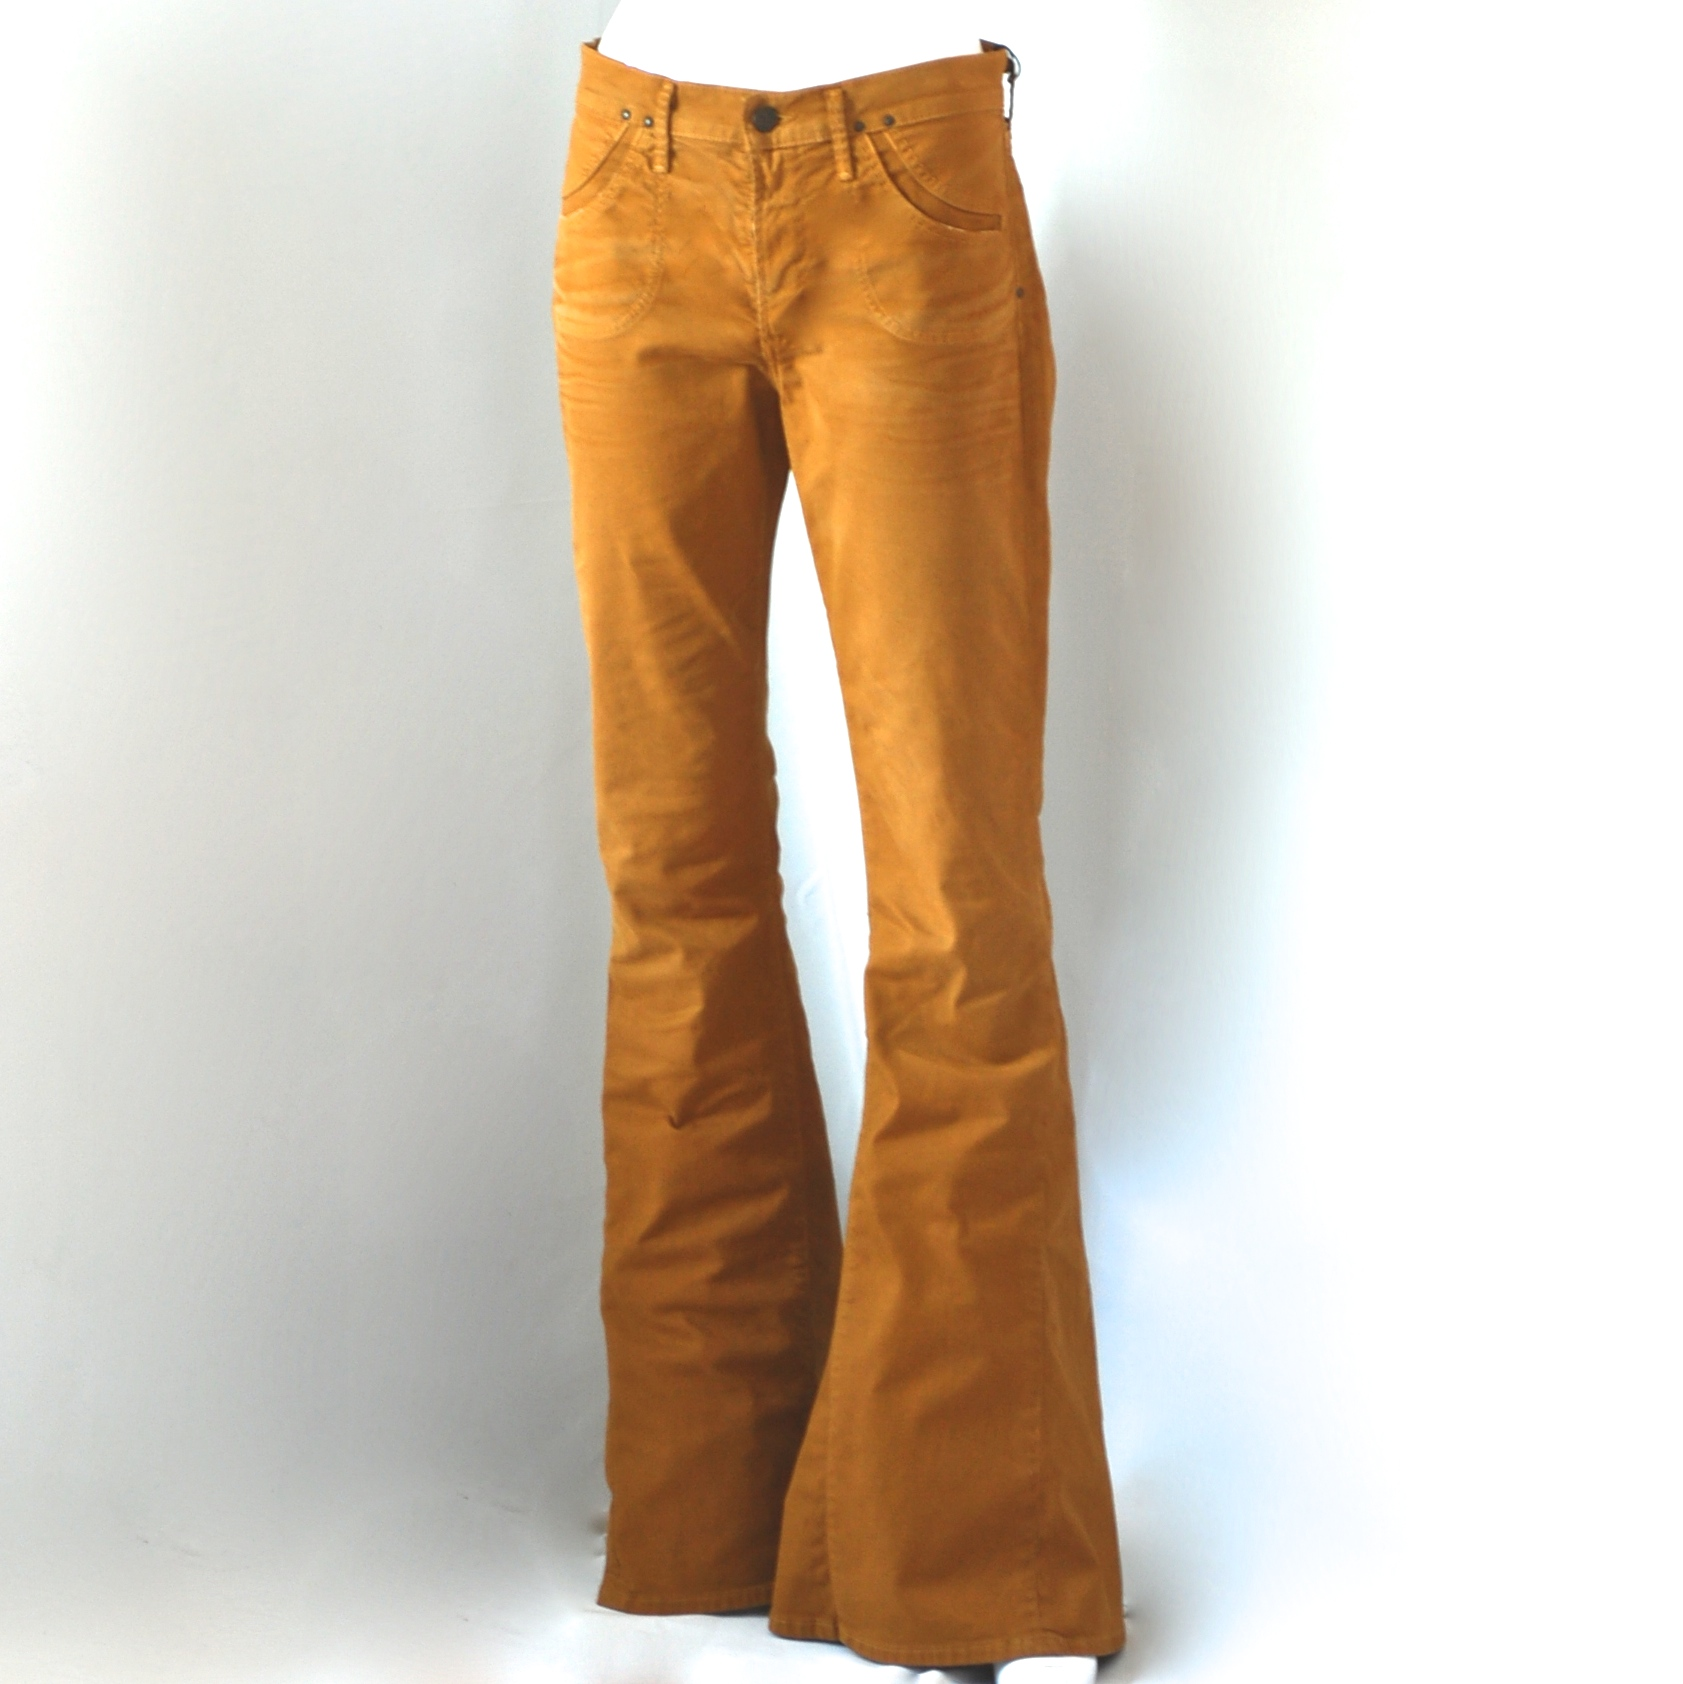 los angeles online sale biggest discount Citizens Of Humanity New Acid Gold Bell Bottom Jeans With Stitch Detail -  USA